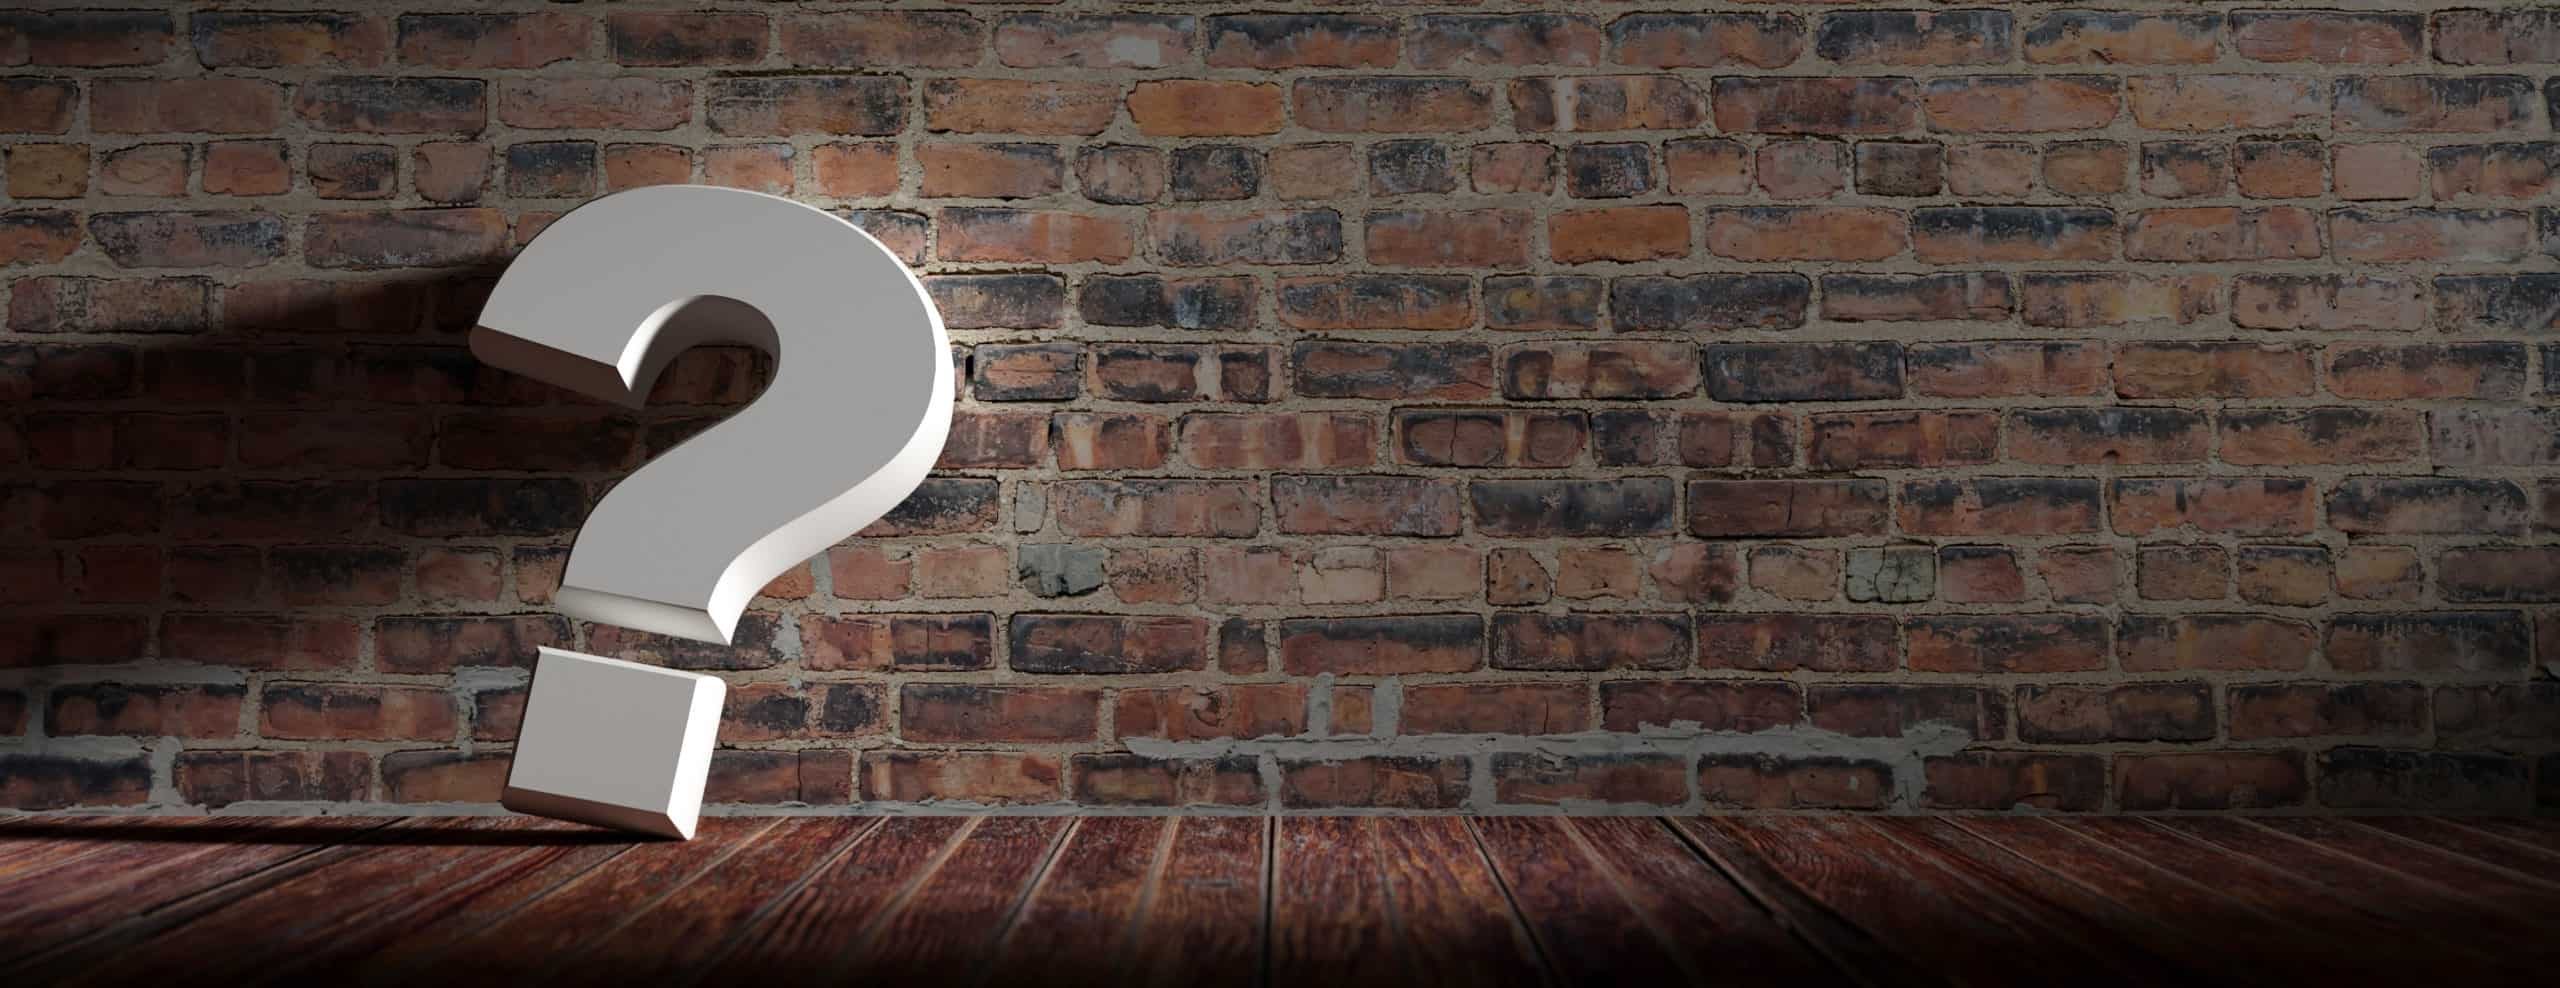 Question mark on wooden floor and vintage brick wall background. Interior decoration concept. Banner, copy space. 3d illustration